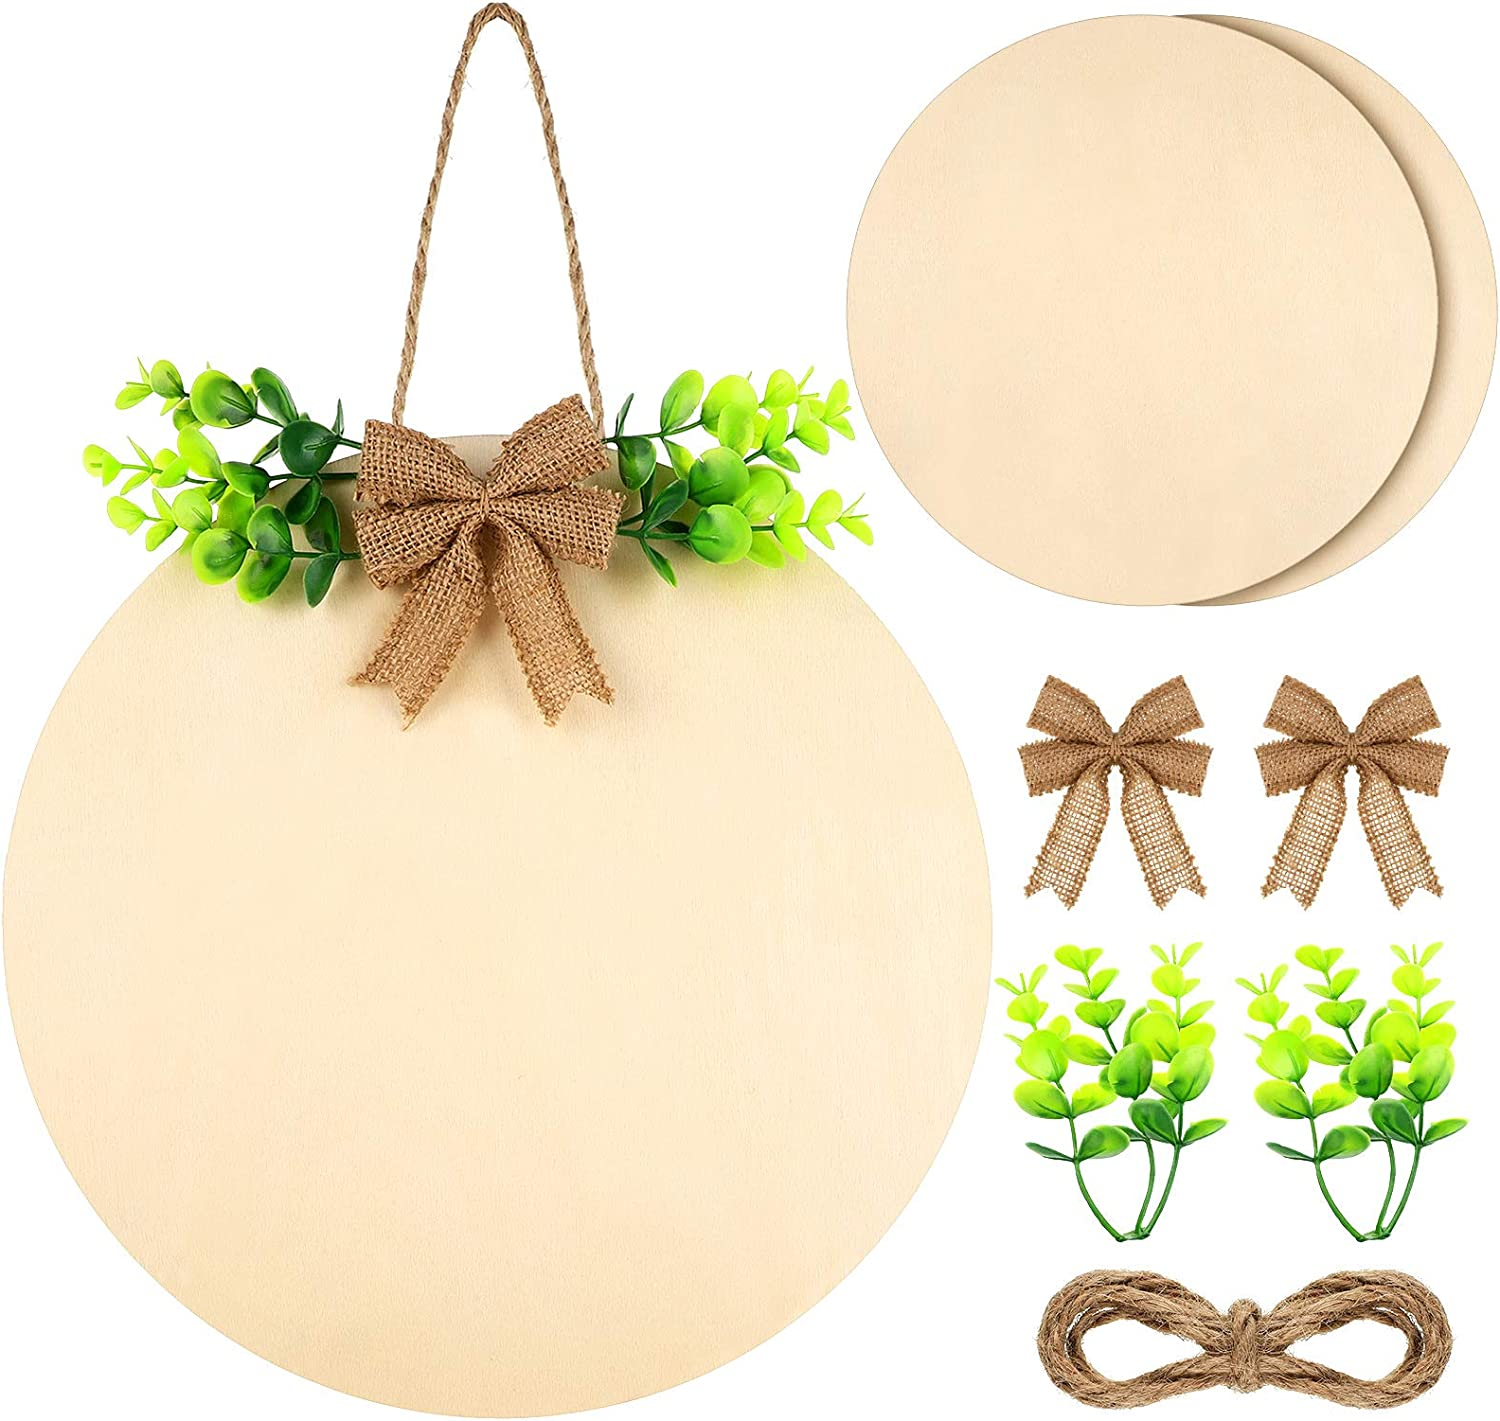 2 Sets 12 Inch Unfinished Wood Round Cutout for Fall Christmas Decor, Outdoor Yard Decoration Kit